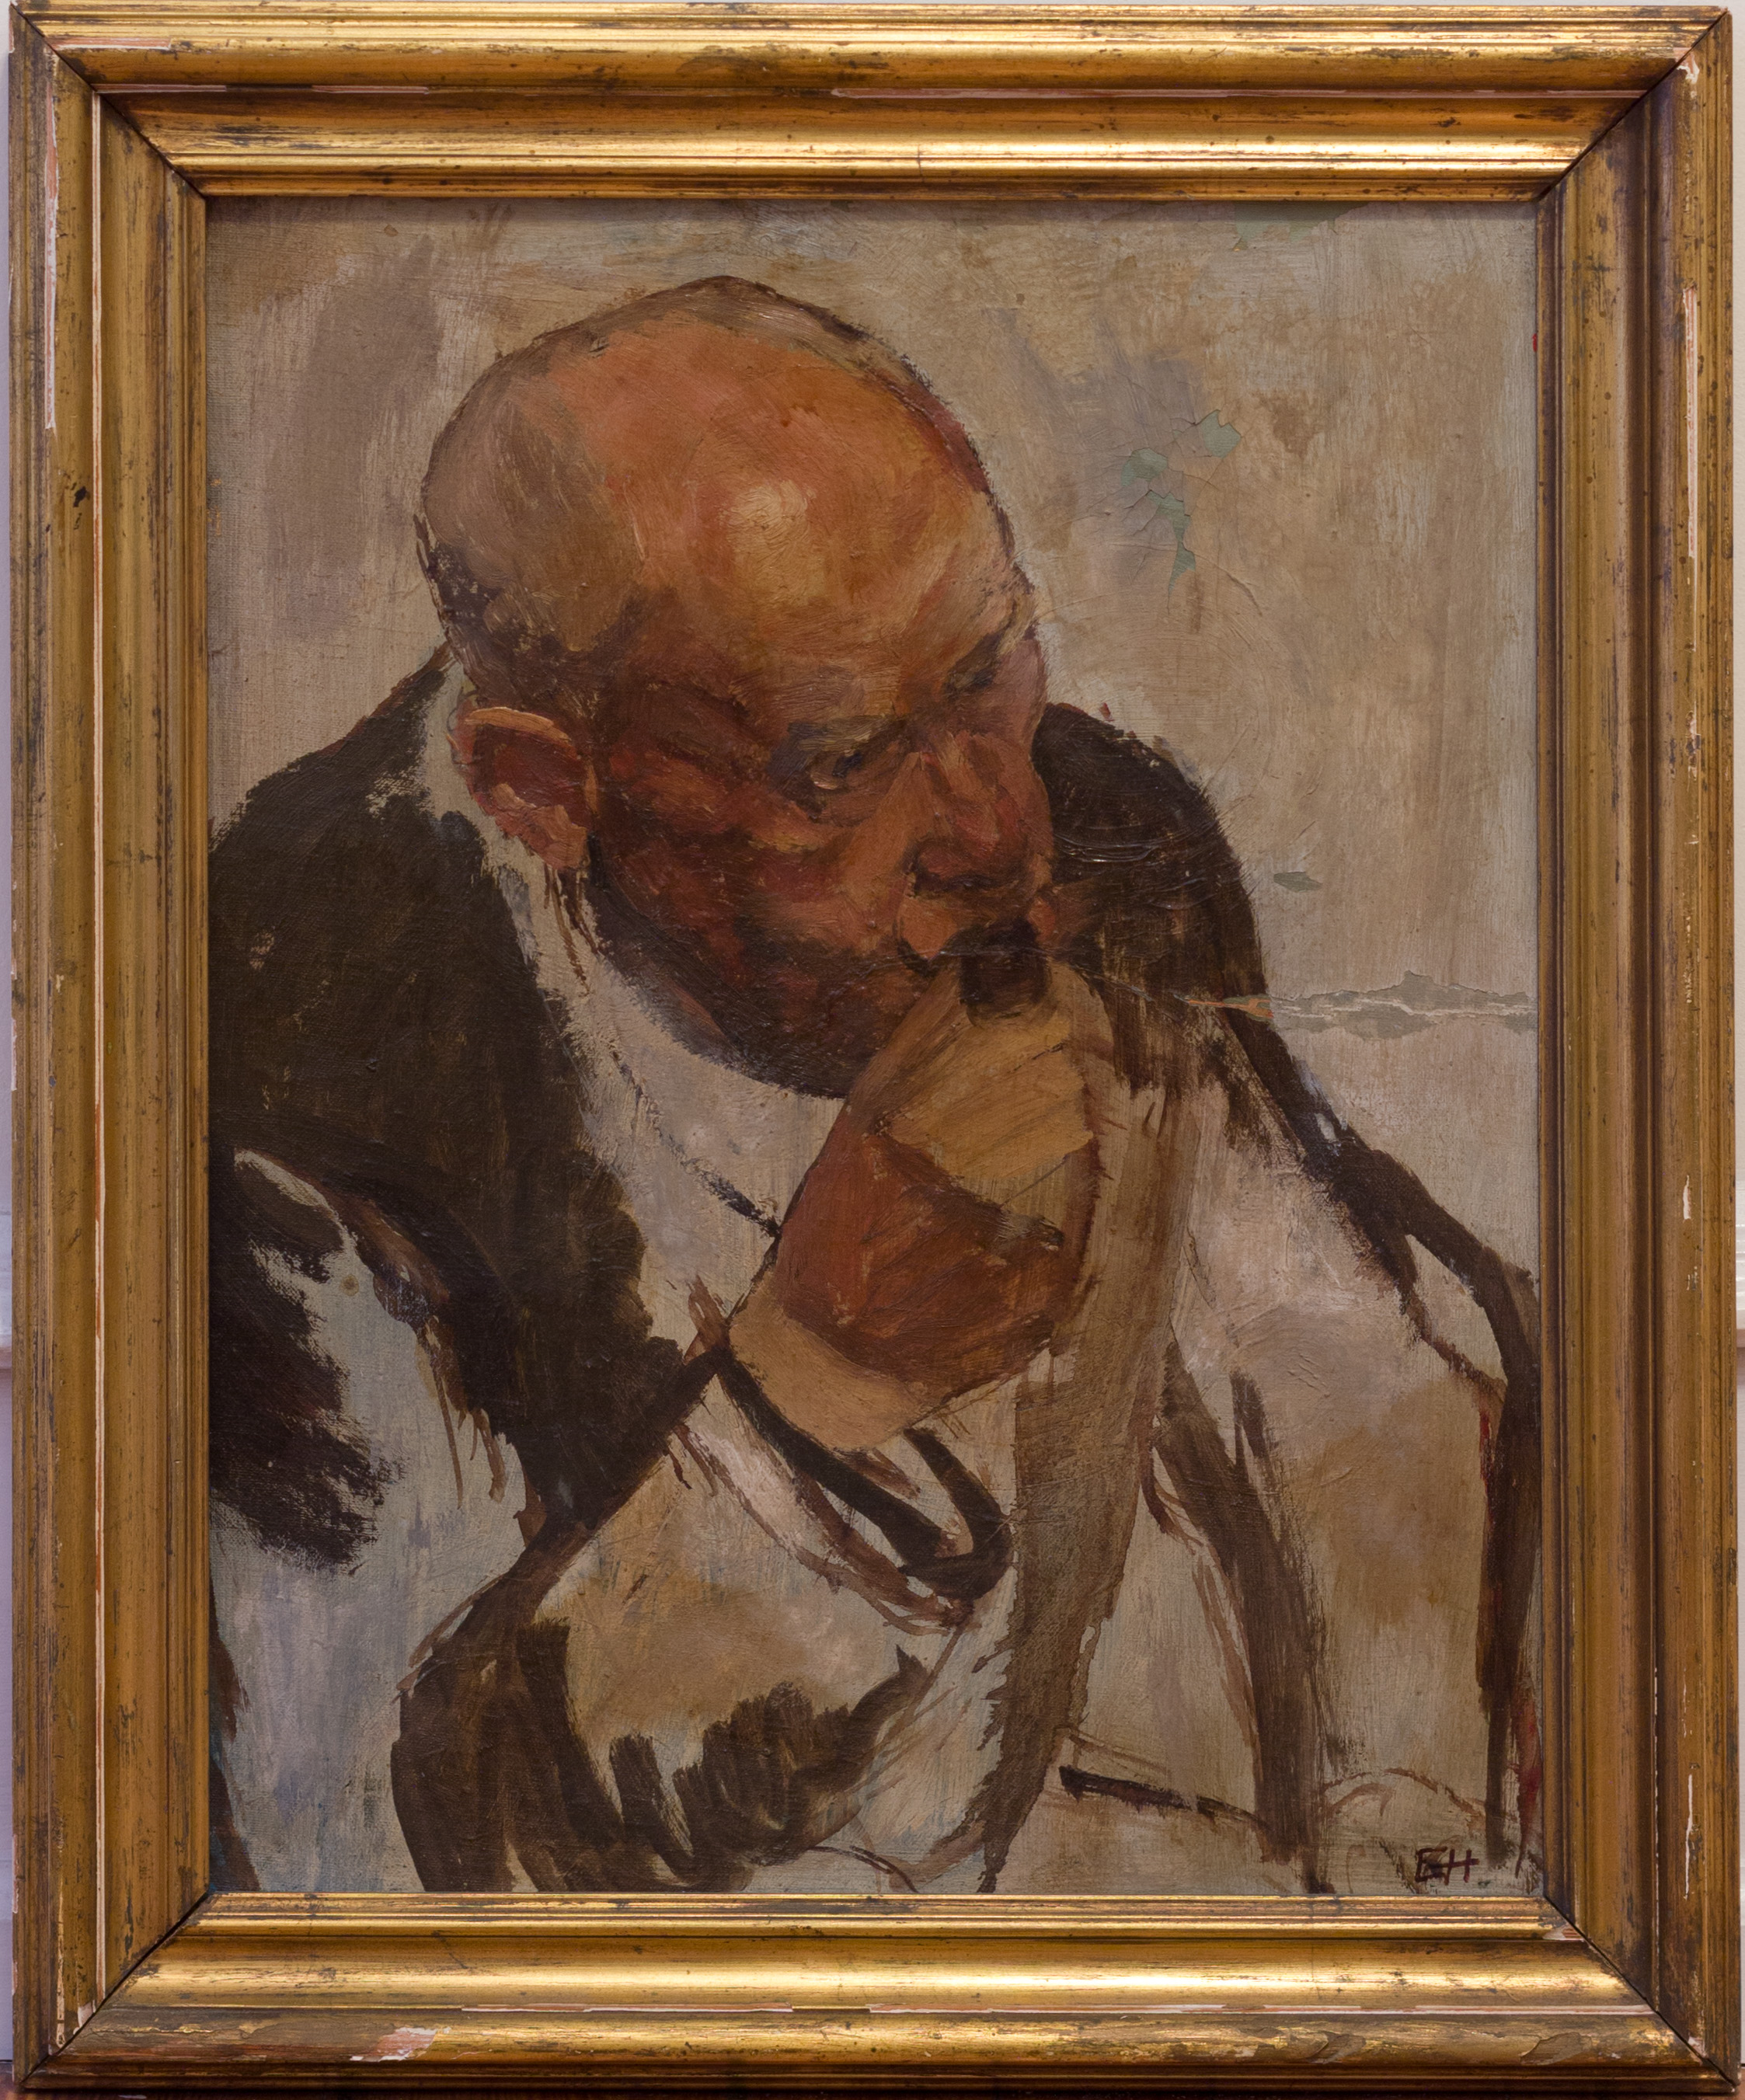 Painting: Portrait (#12) by Eleanor Hilowitz (1913 - 2007). 1948. Oil on canvas. 16 x 20. Framed.